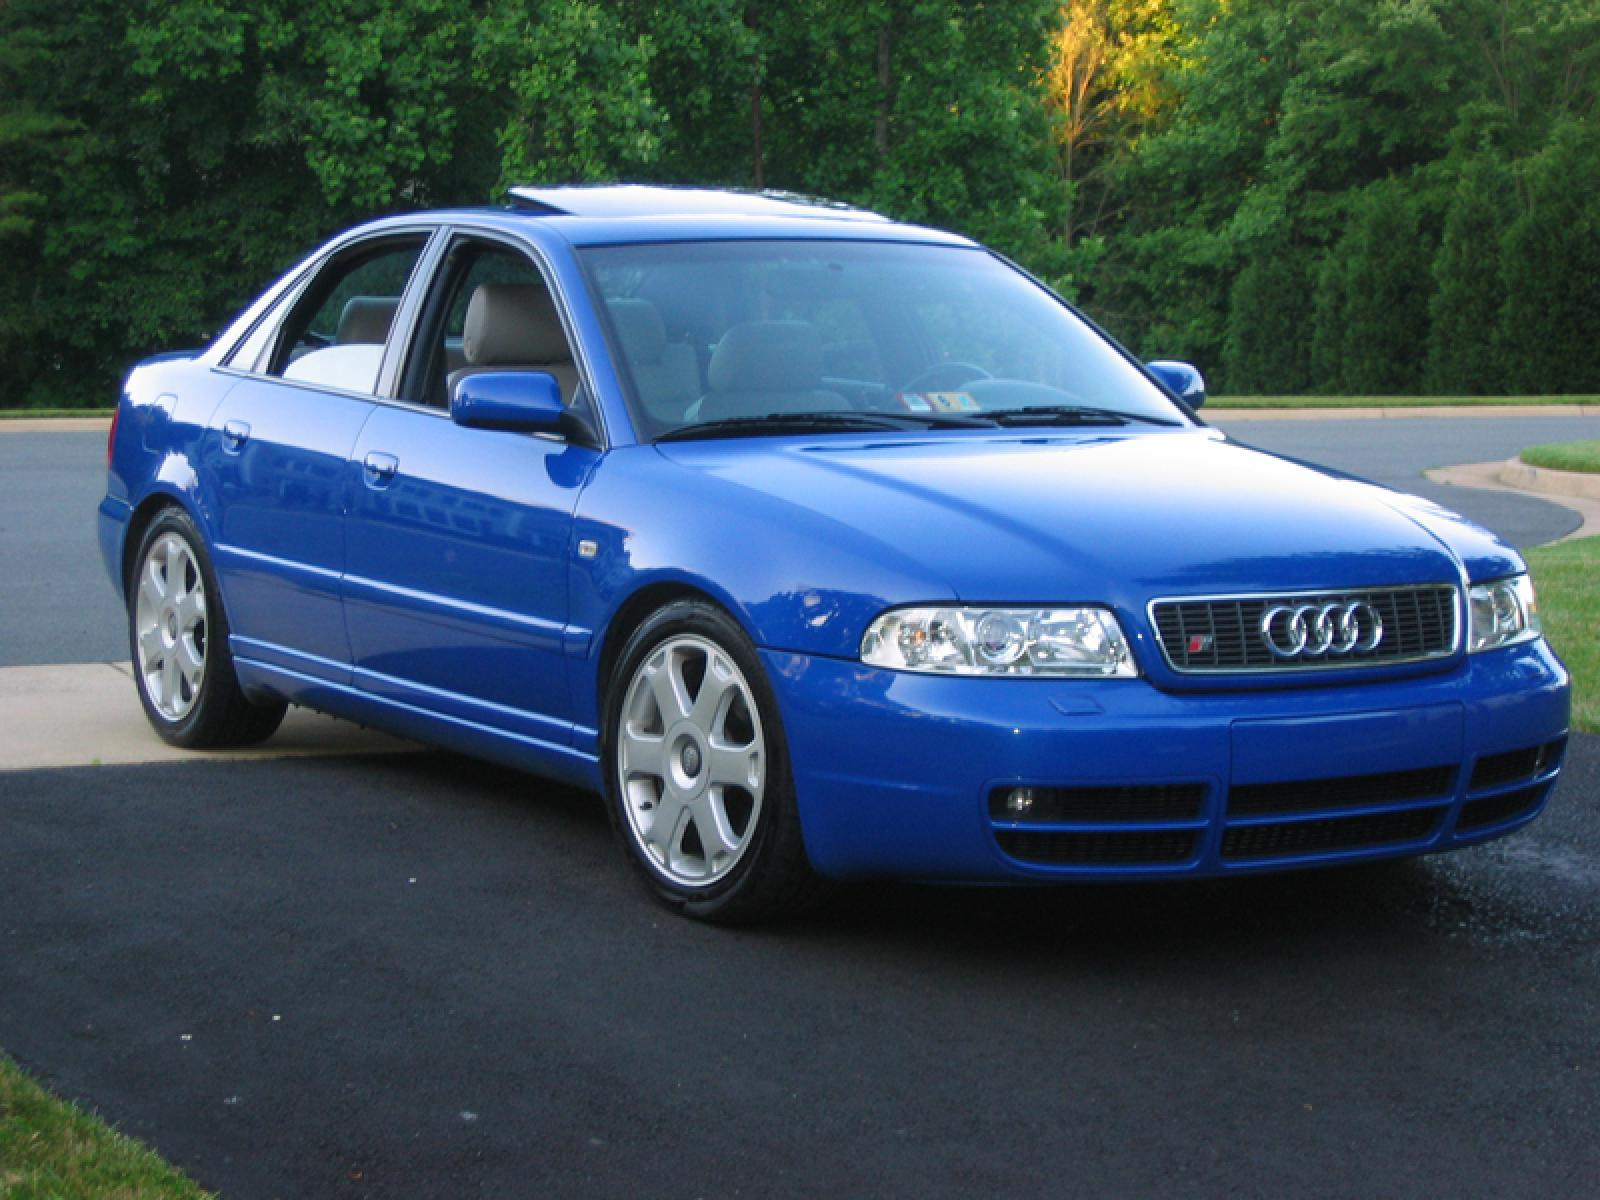 Audi S Information And Photos ZombieDrive - 2000 audi s4